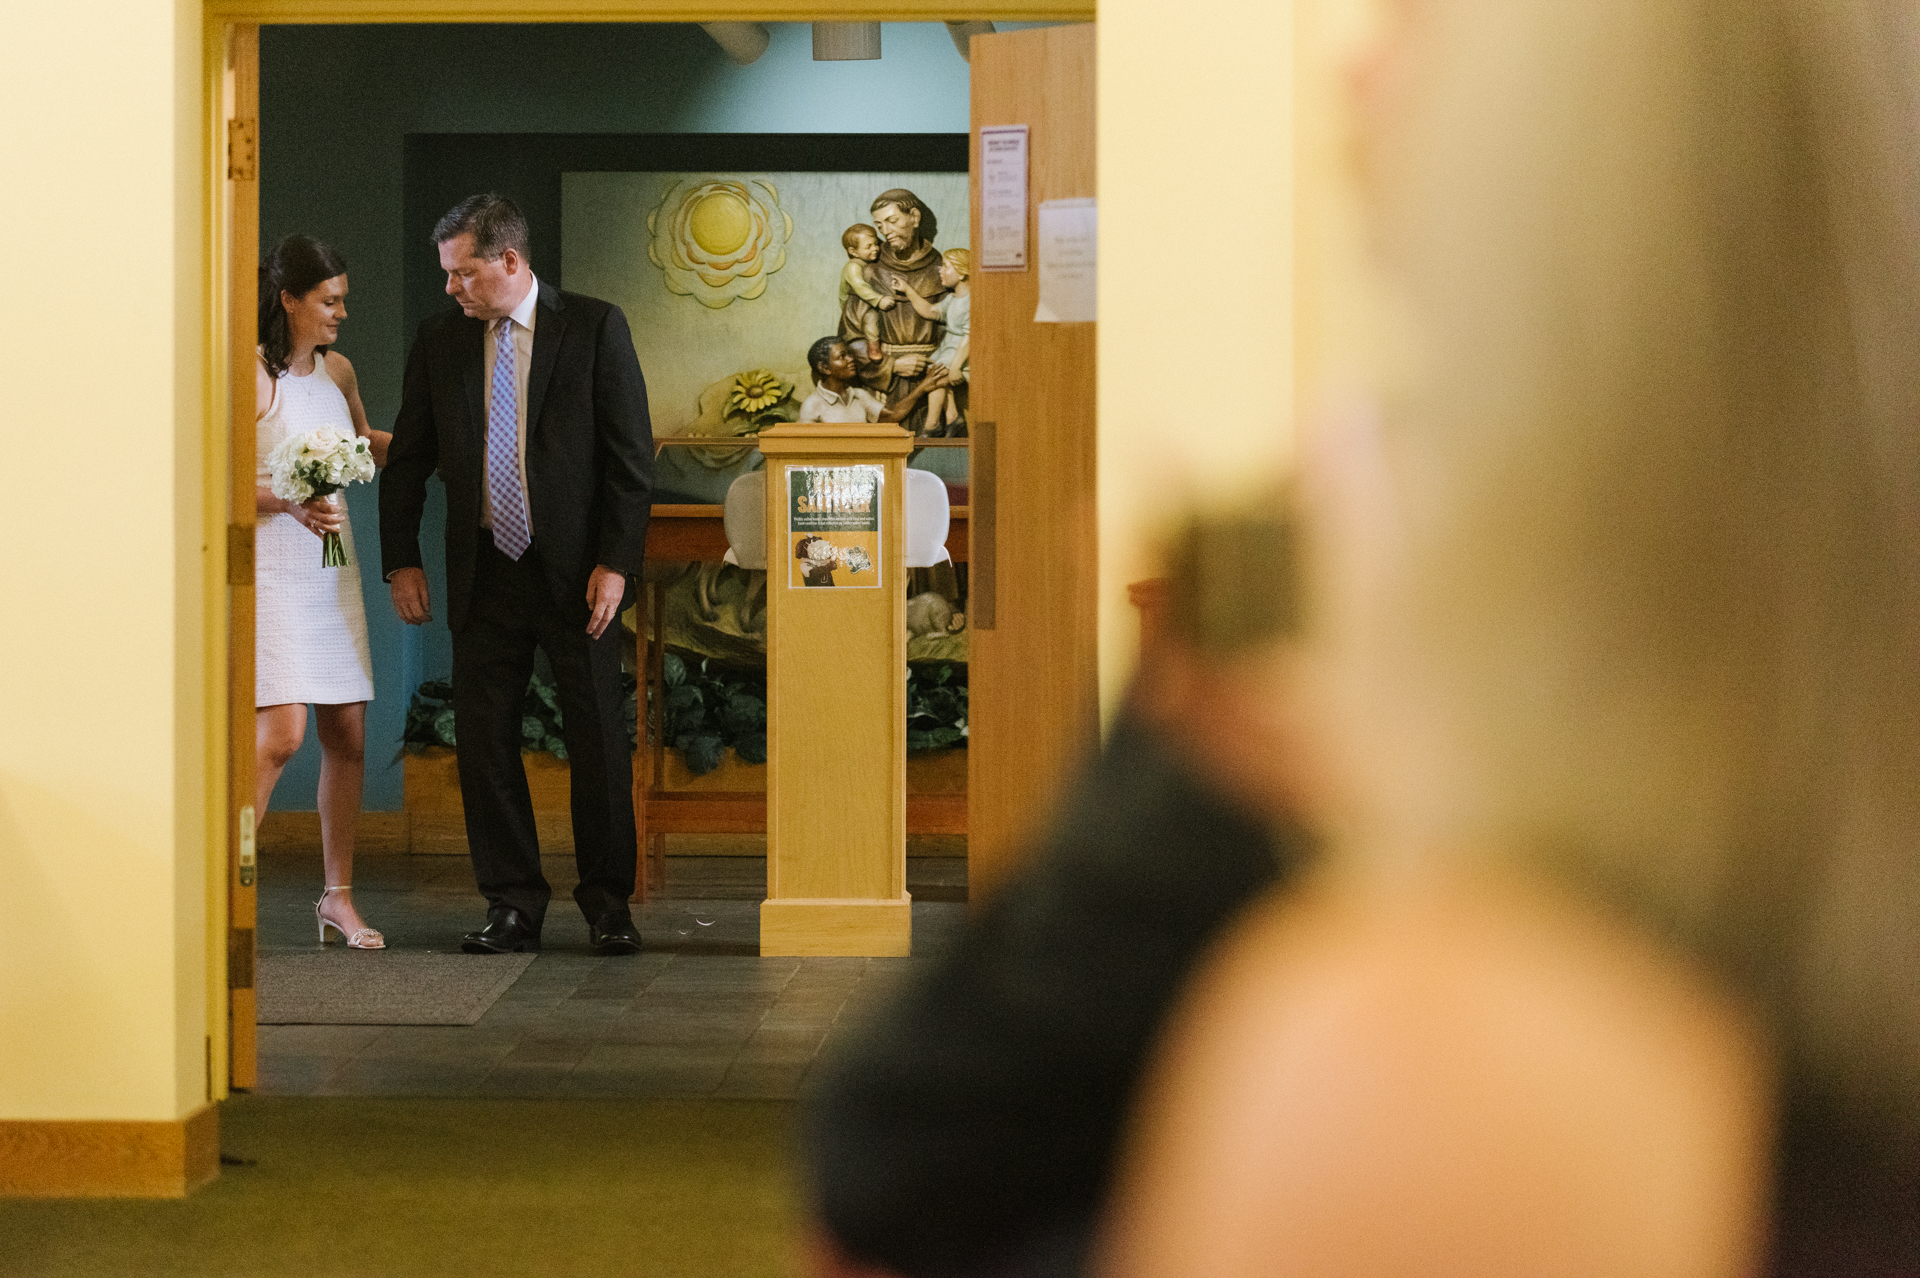 St. Mary of the Angels Chapel, Siena College Wedding Image | A bride takes her father's arm as they prepare to walk down the aisle